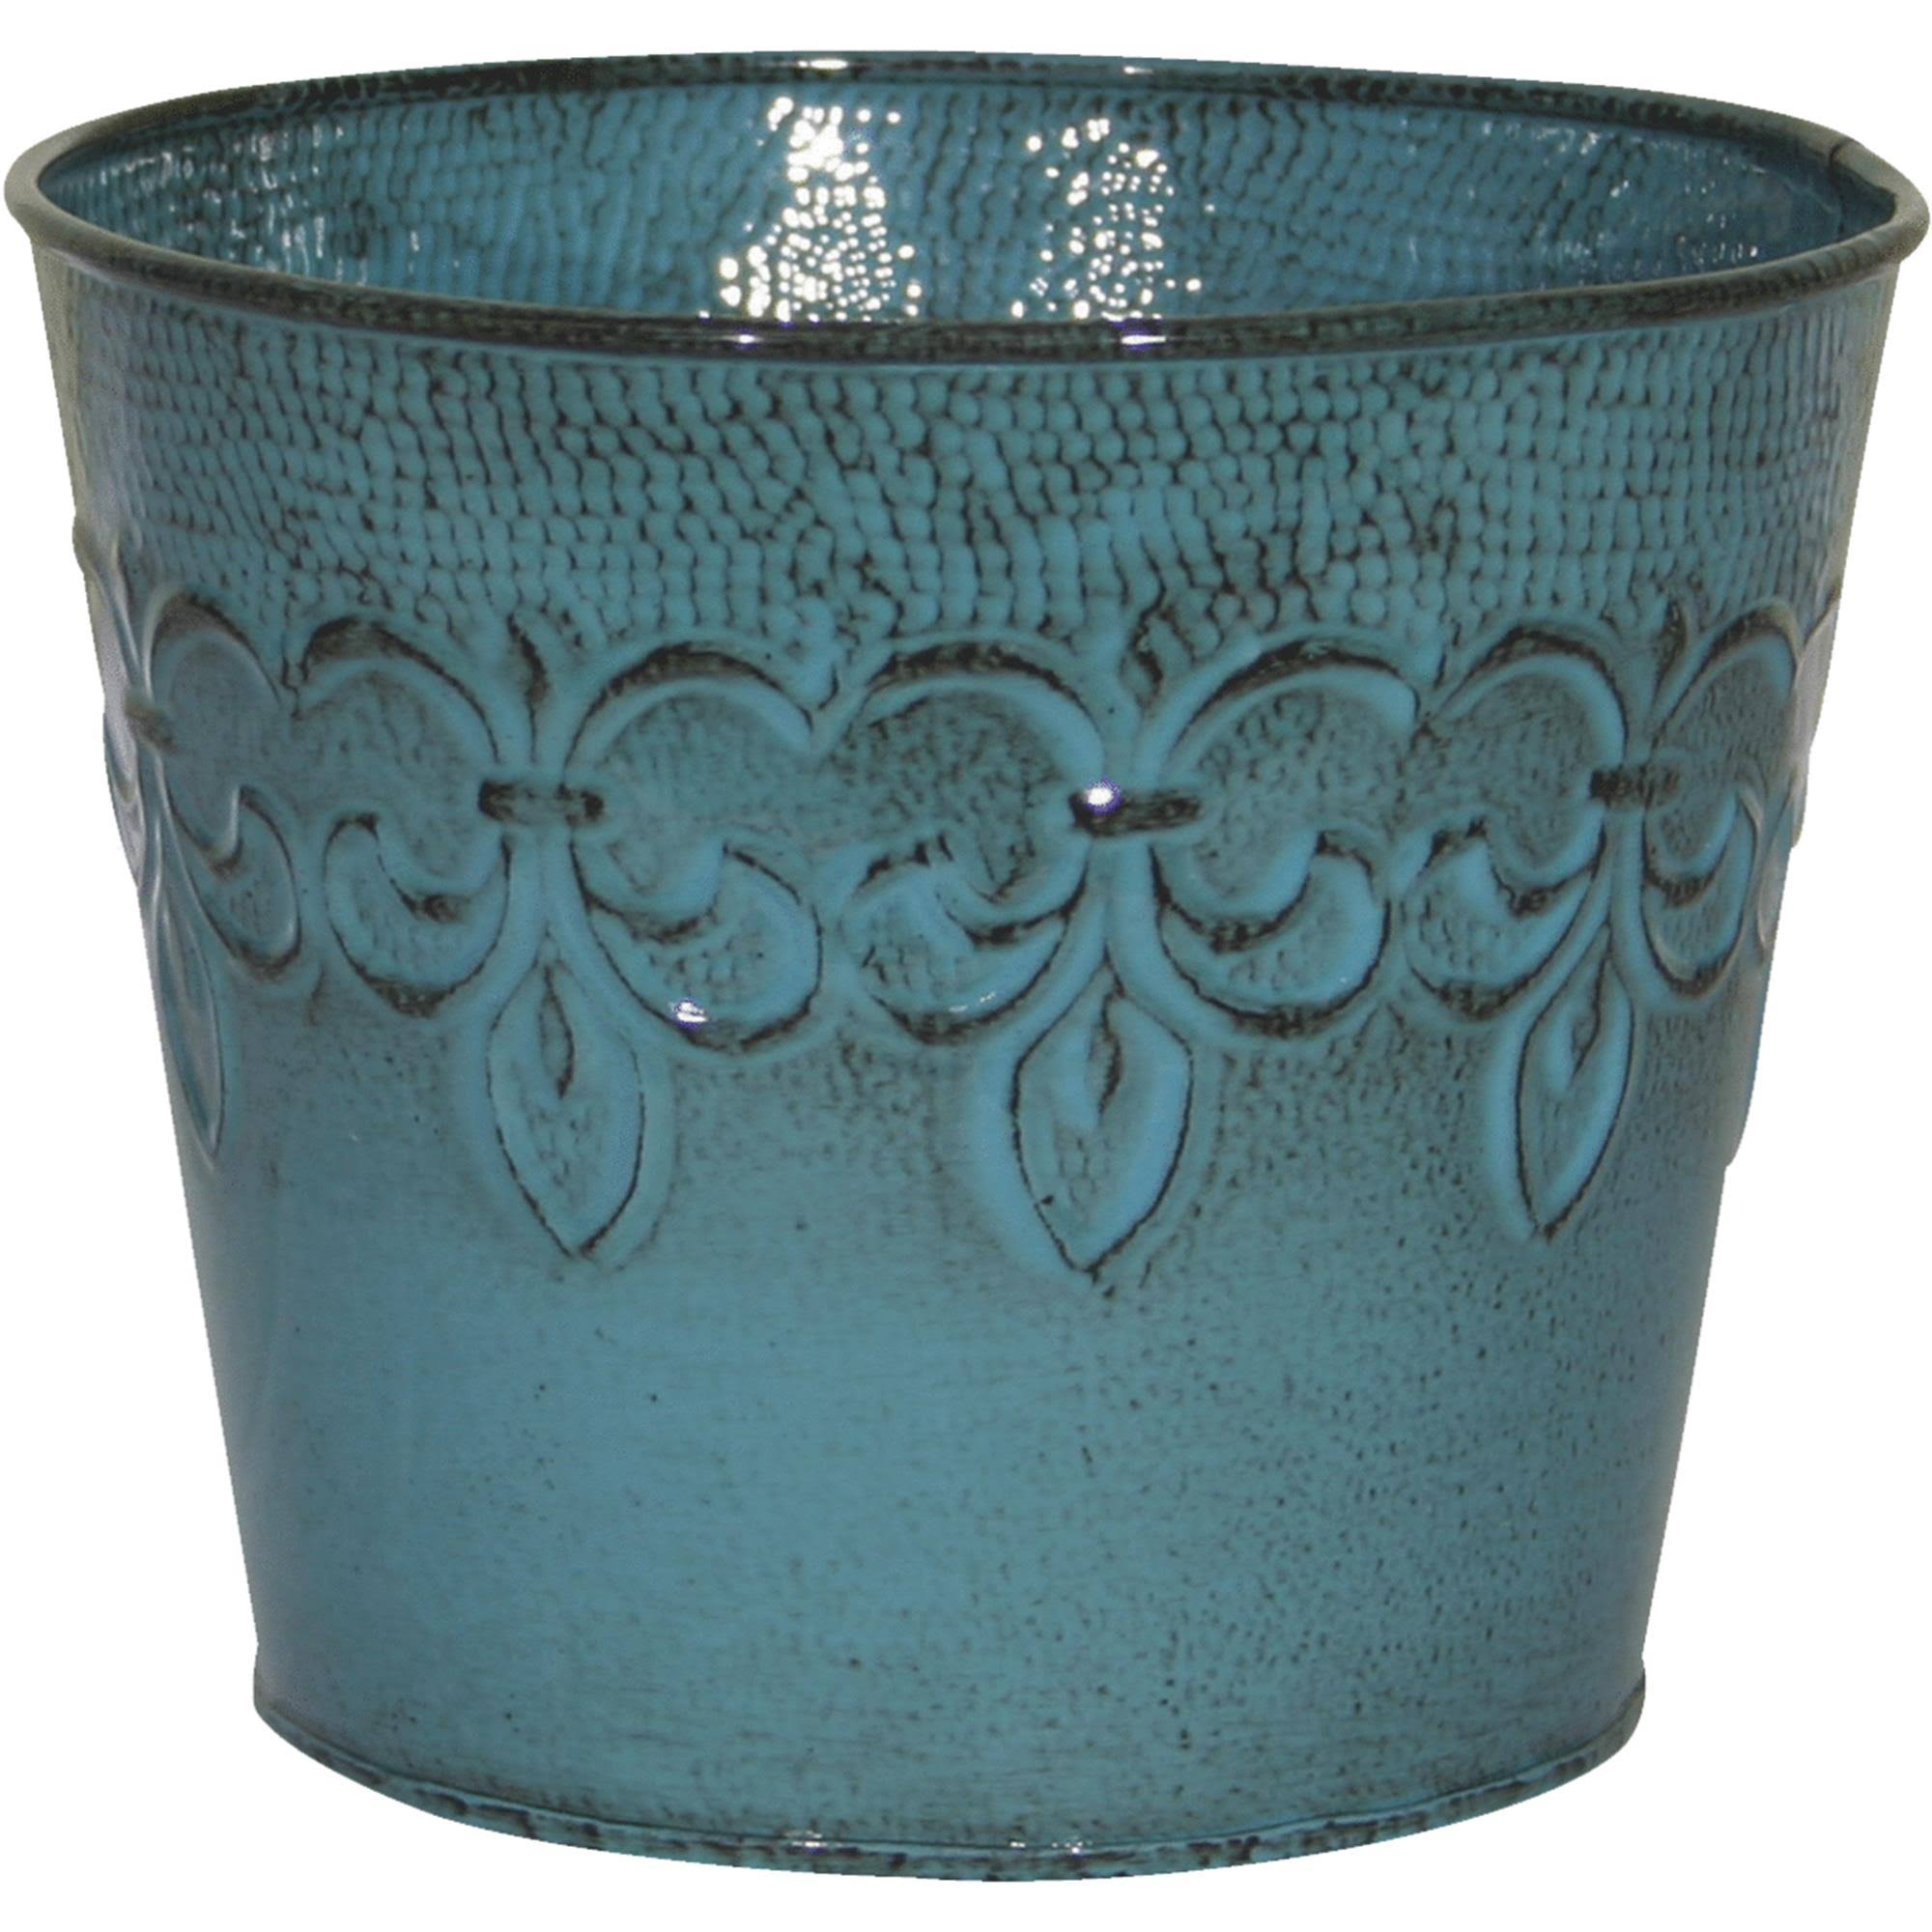 Robert Allen Fleur De Lis Metal Planter - Blue Surf, 6""